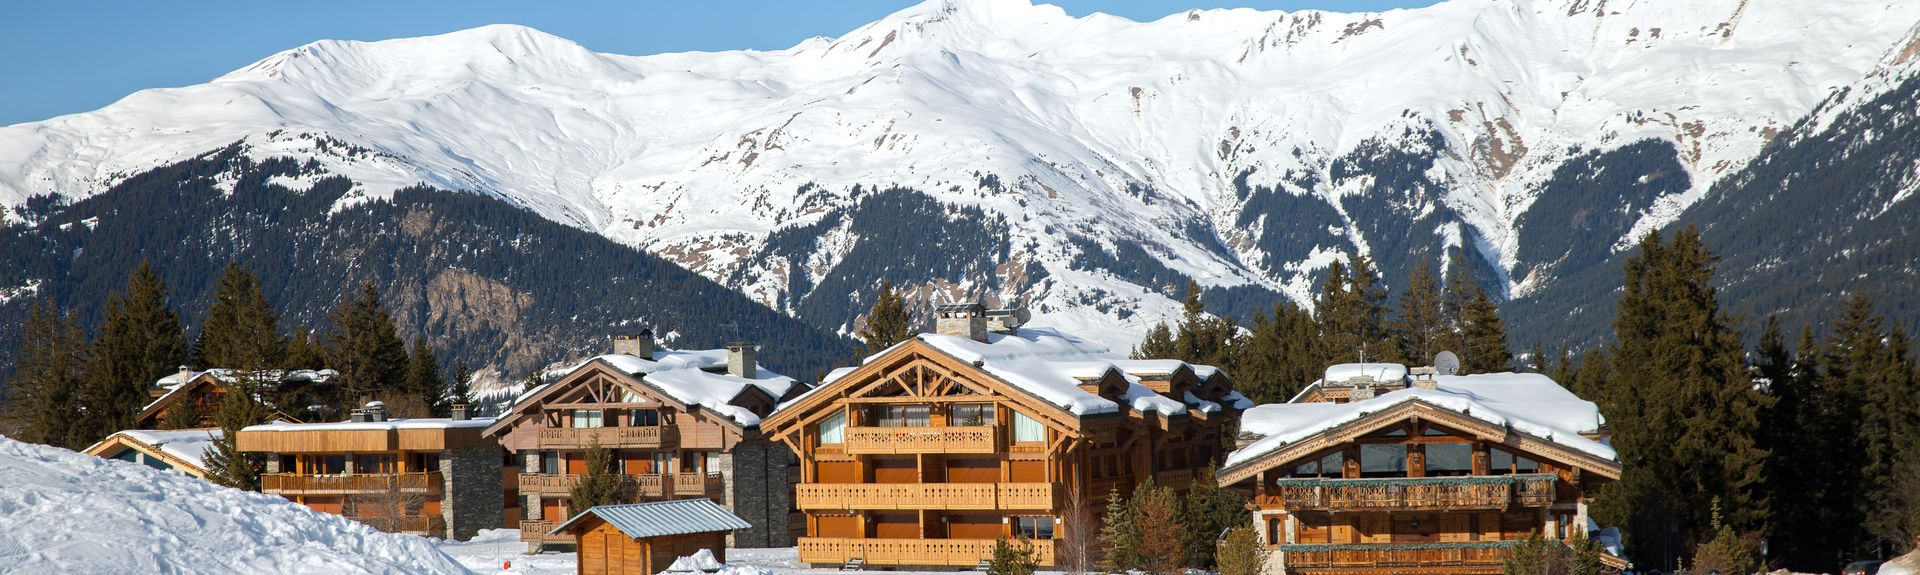 Courchevel 1650 - Moriond, Saint-Bon-Tarentaise, France